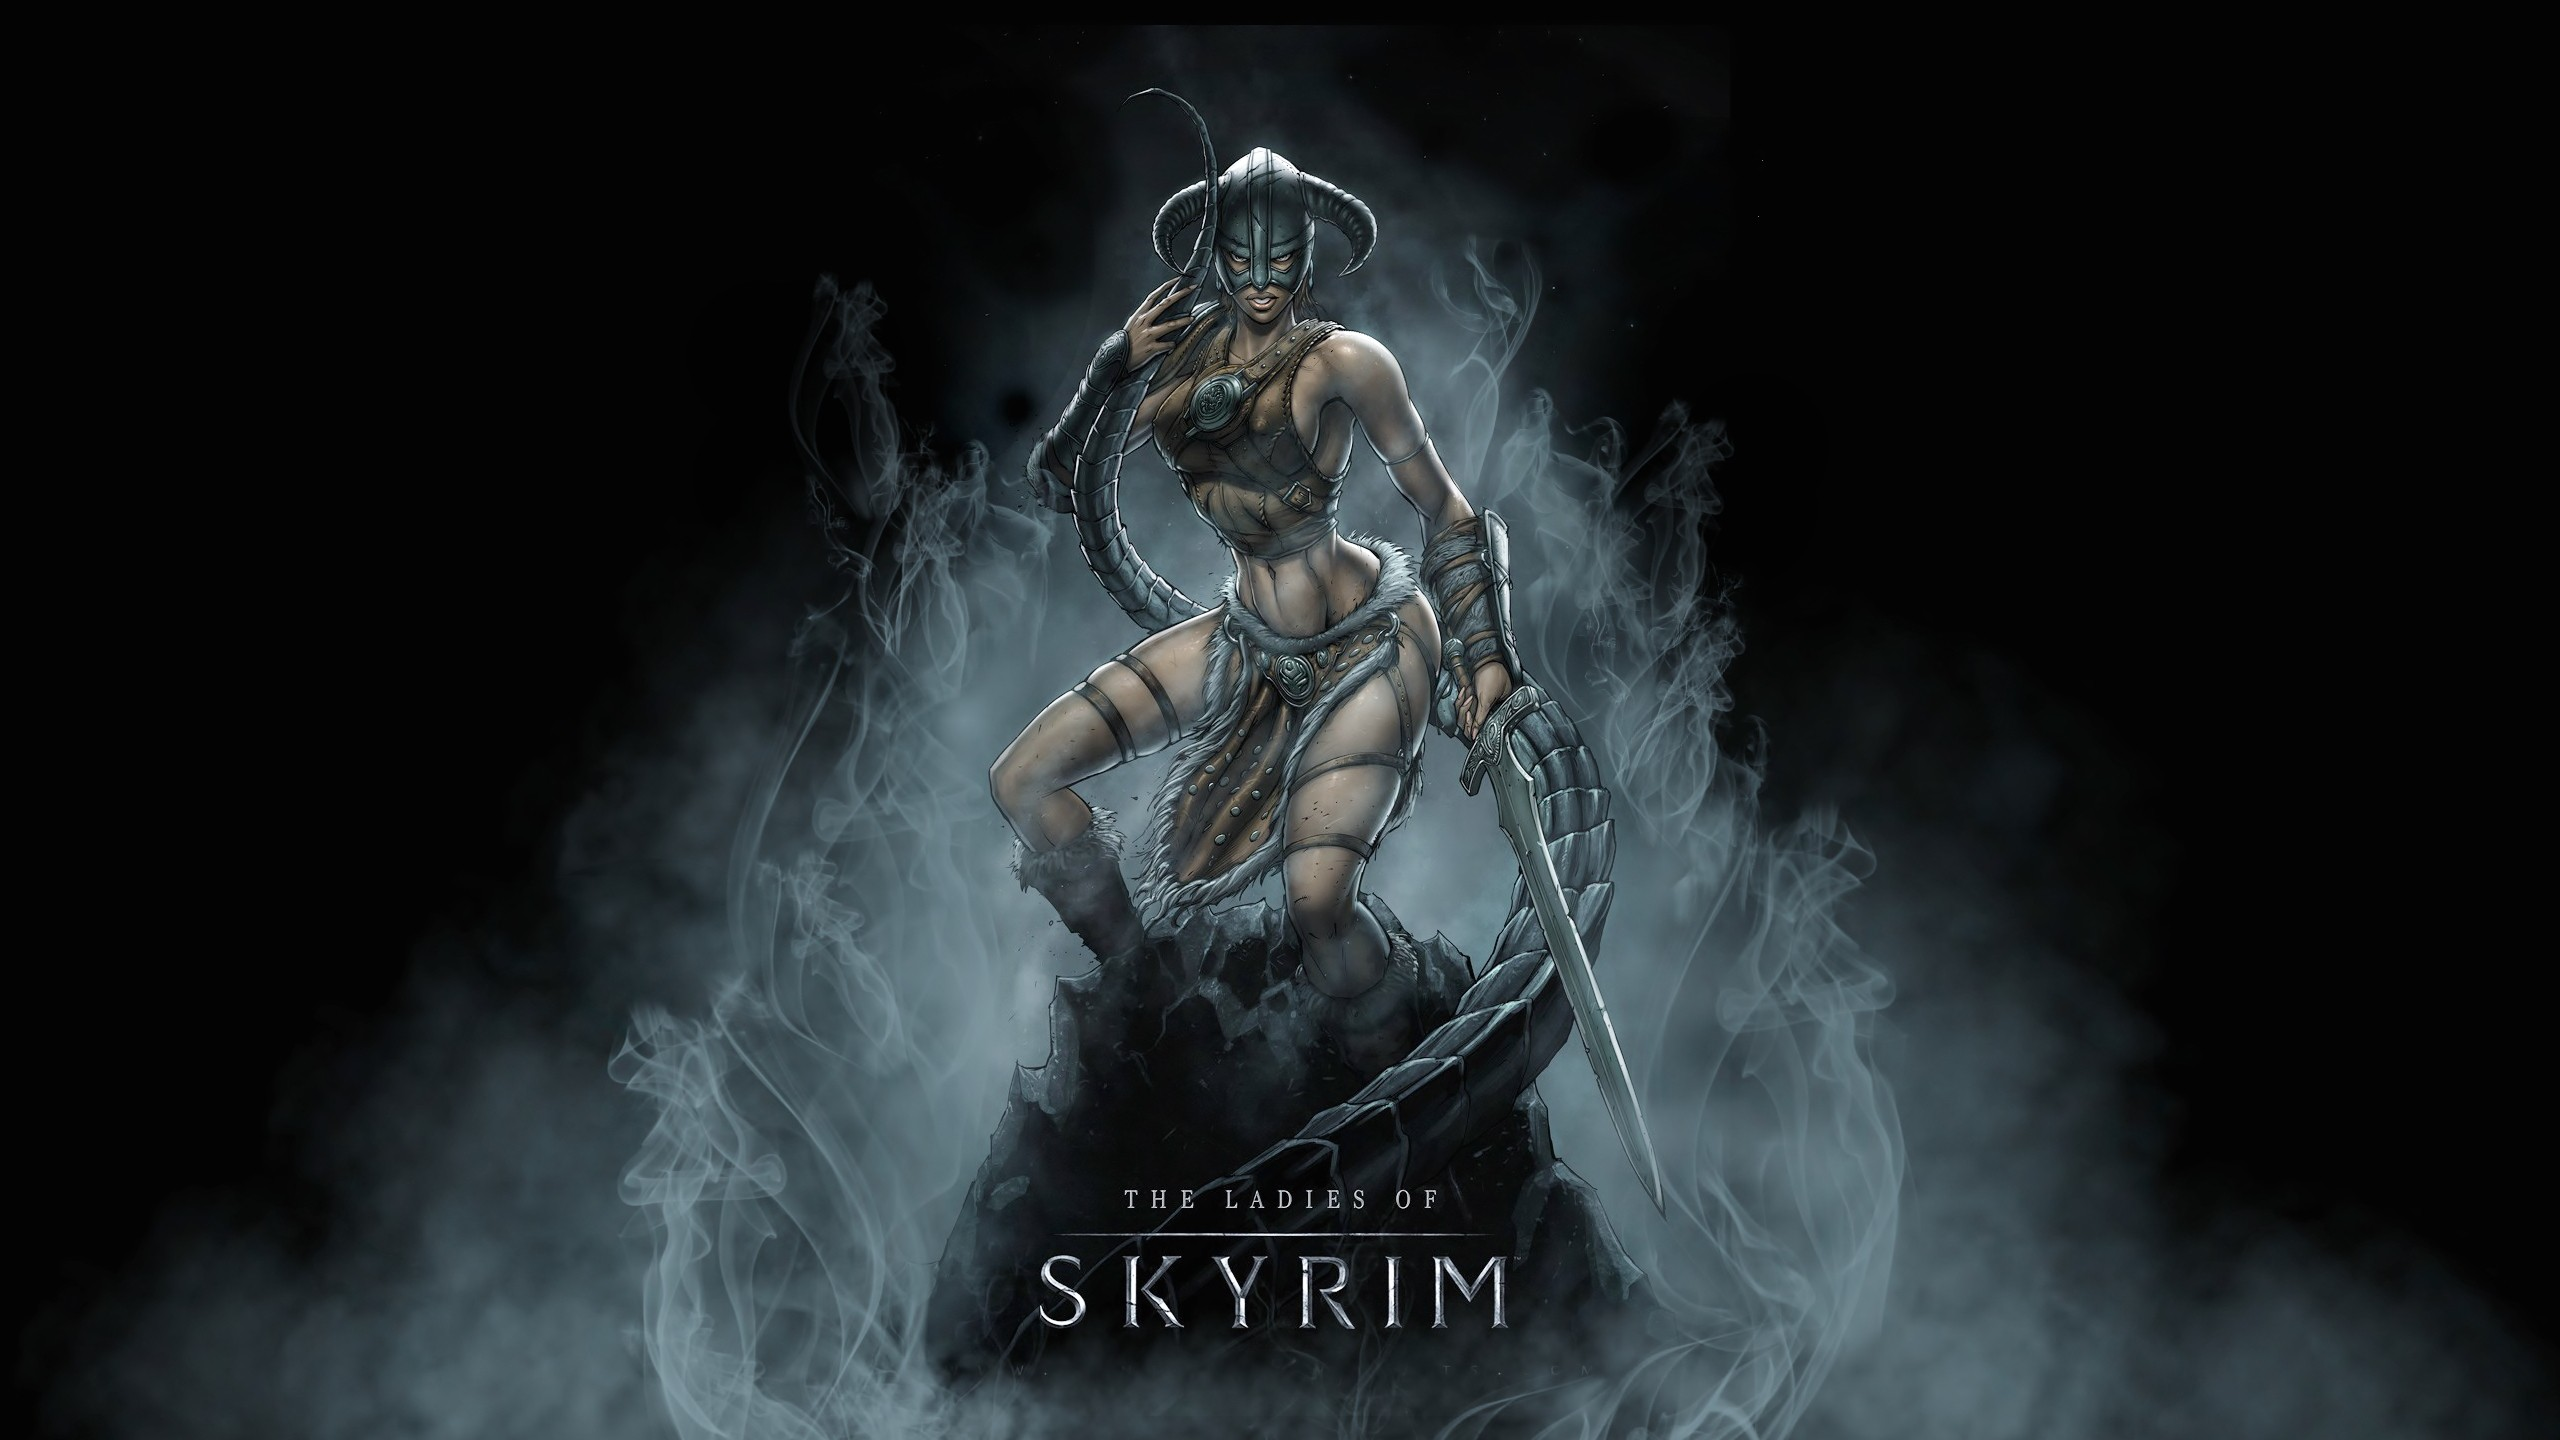 The Elder Scrolls V Skyrim Hd Wallpaper Background Image